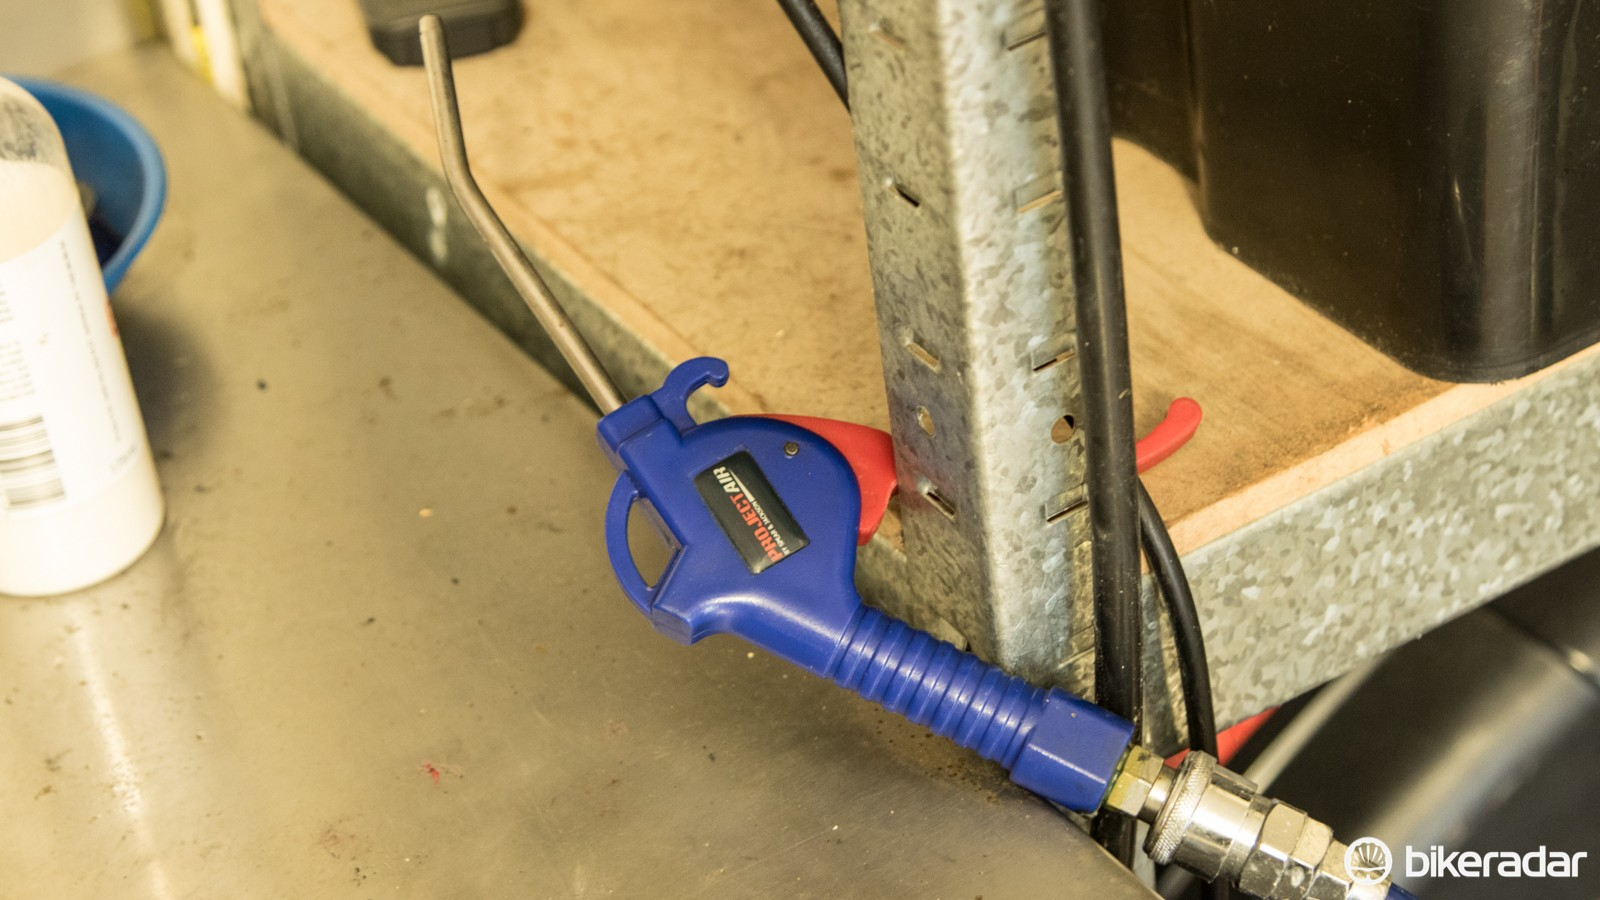 A blowgun is the other attachment you'll want with your air compressor